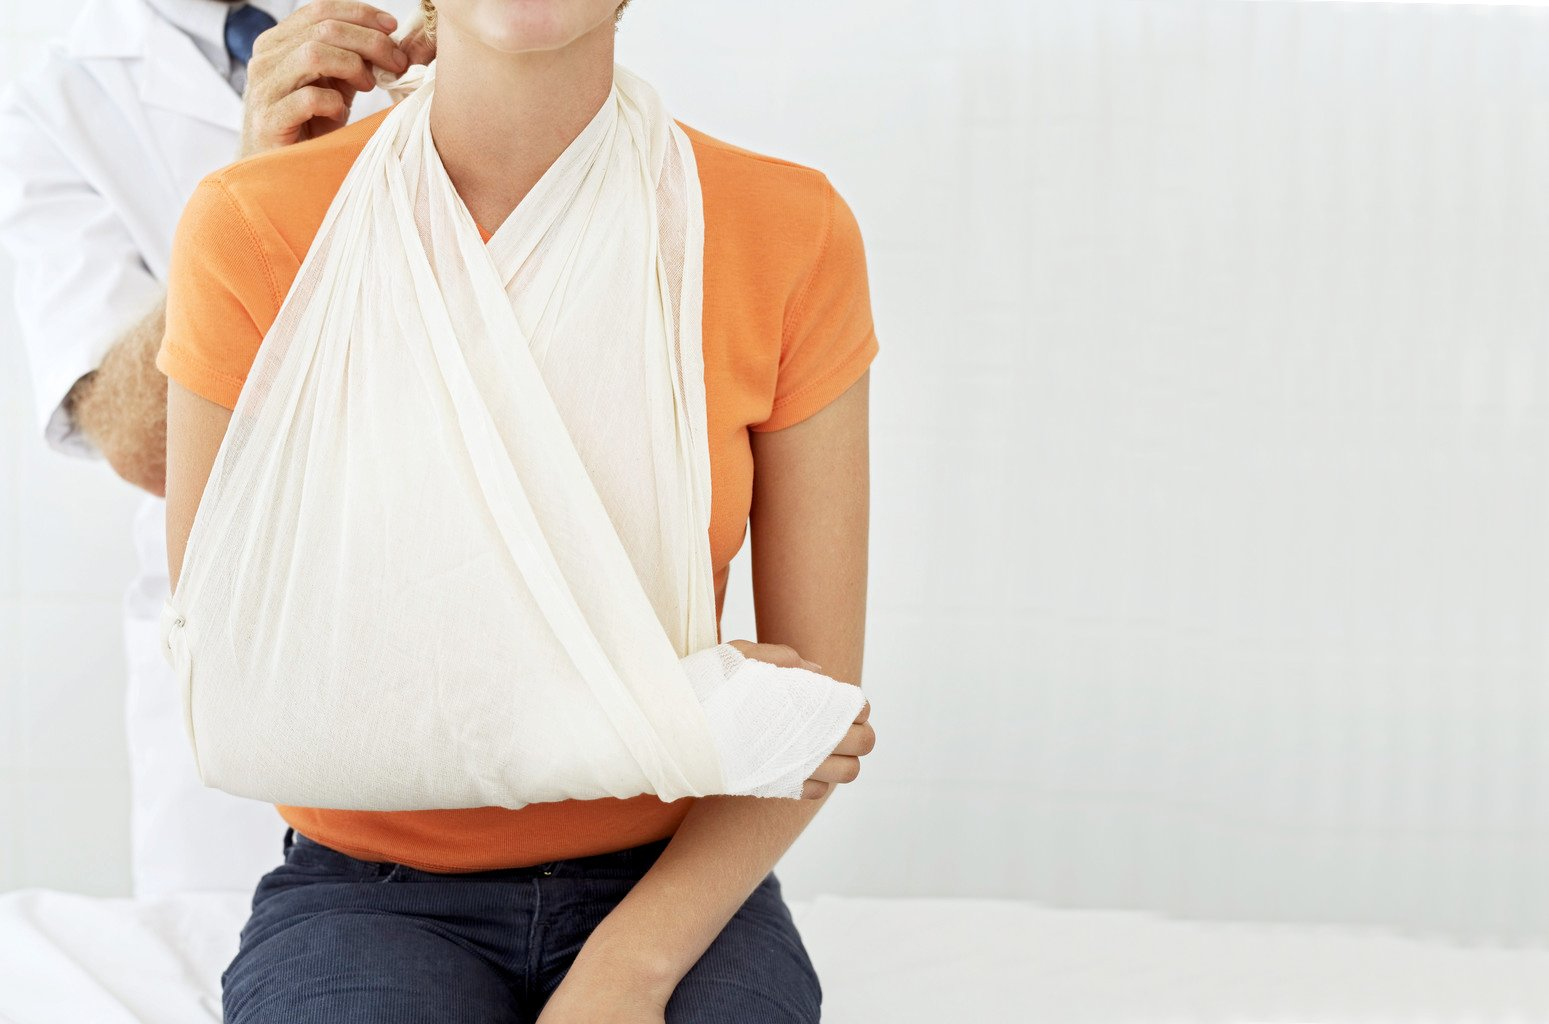 5 Things Every Injured Worker Should Know About Workers' Comp